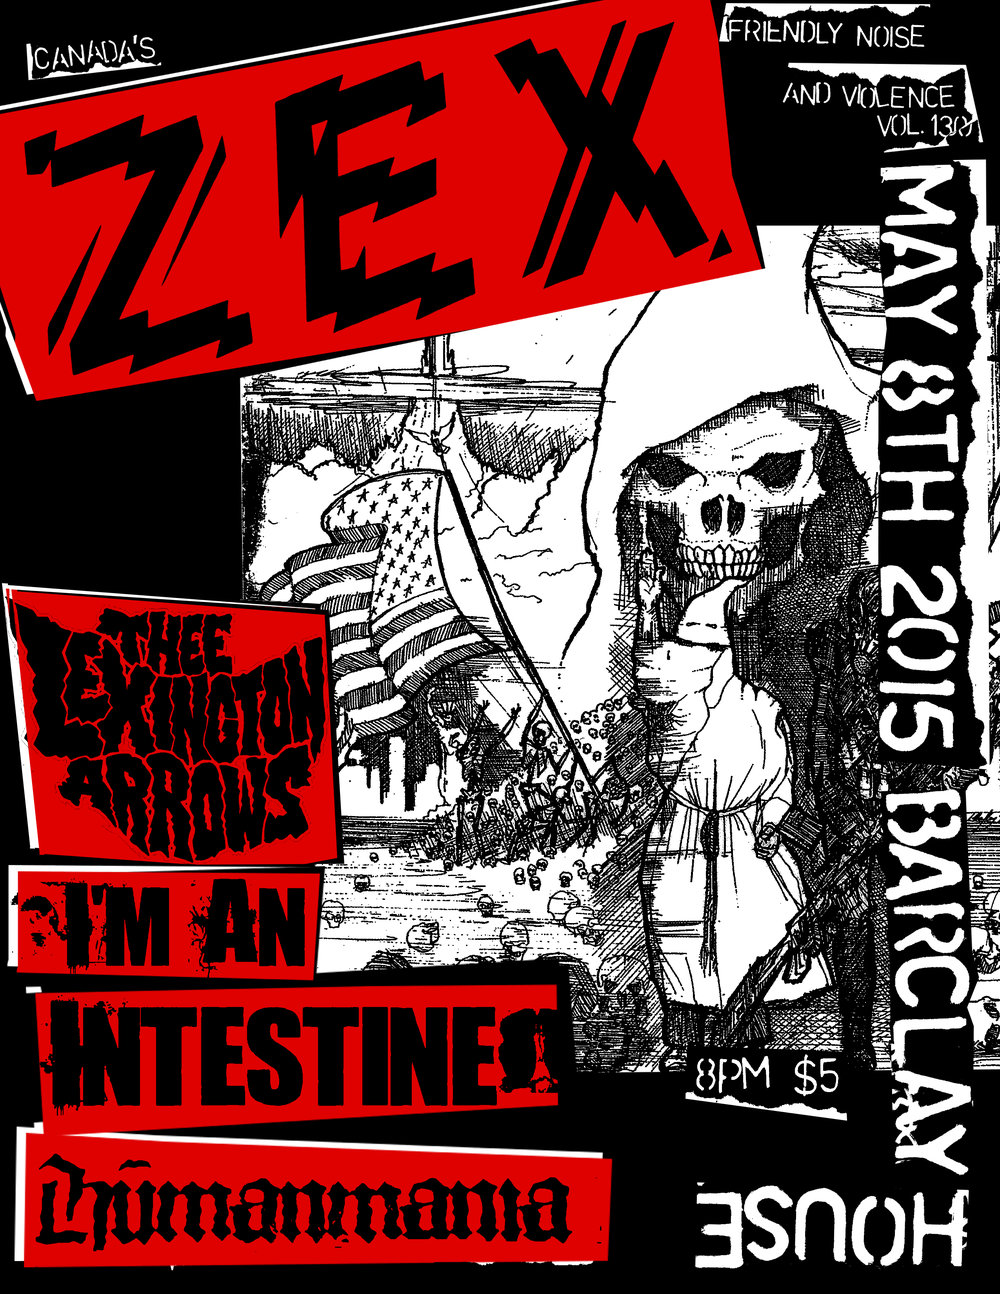 flyer-15.05.08-baltimore-zex-red.jpg